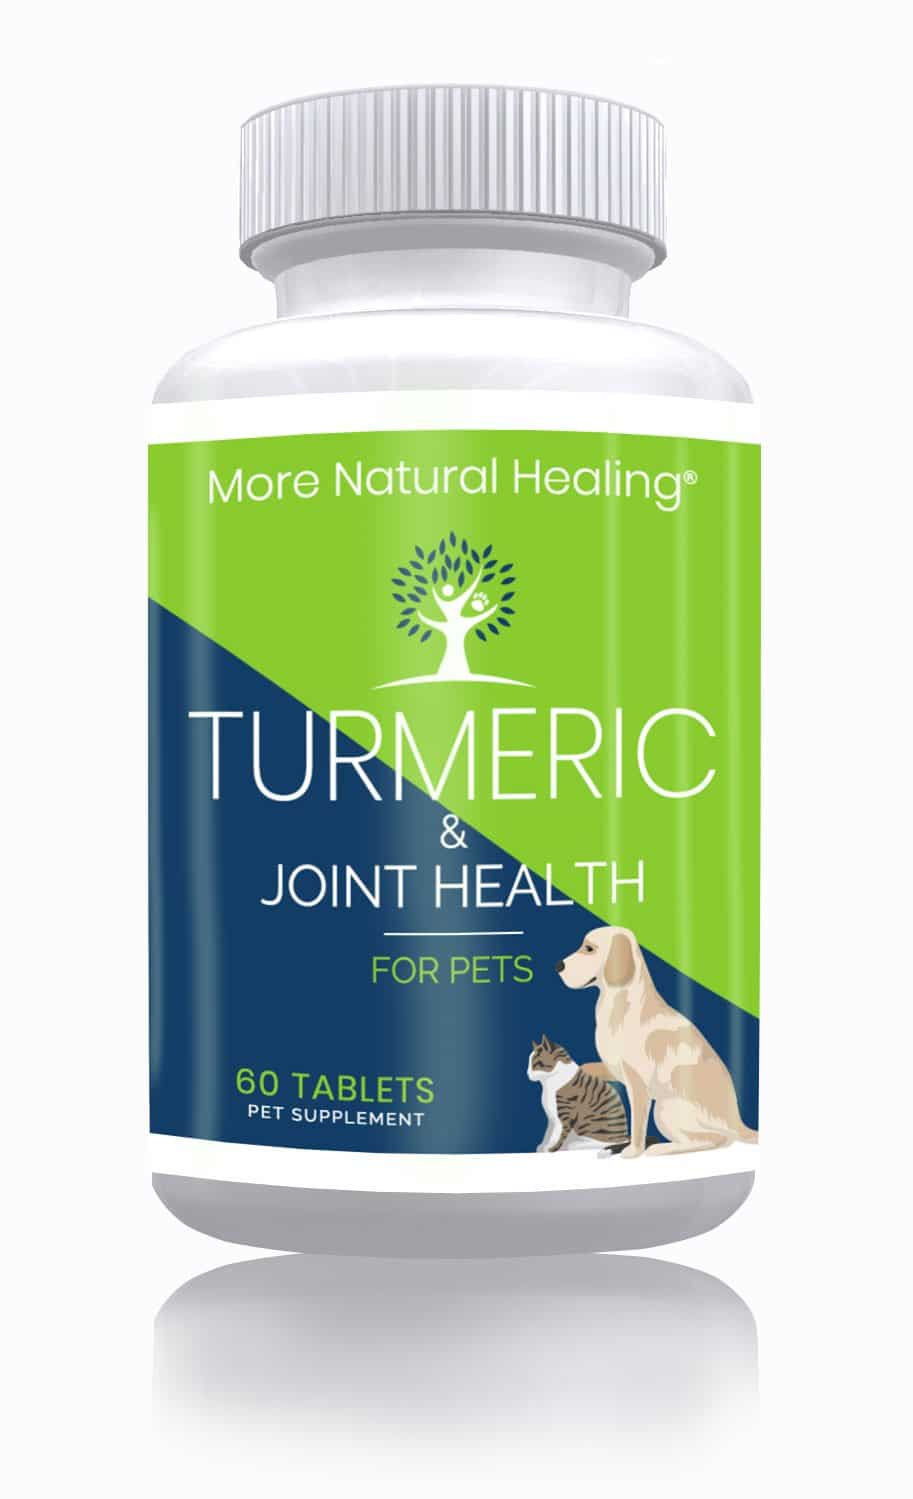 Turmeric, Piperine, Glucosamine, Chondroitin, MSM, Hyaluronic Acid - More Natural Healing